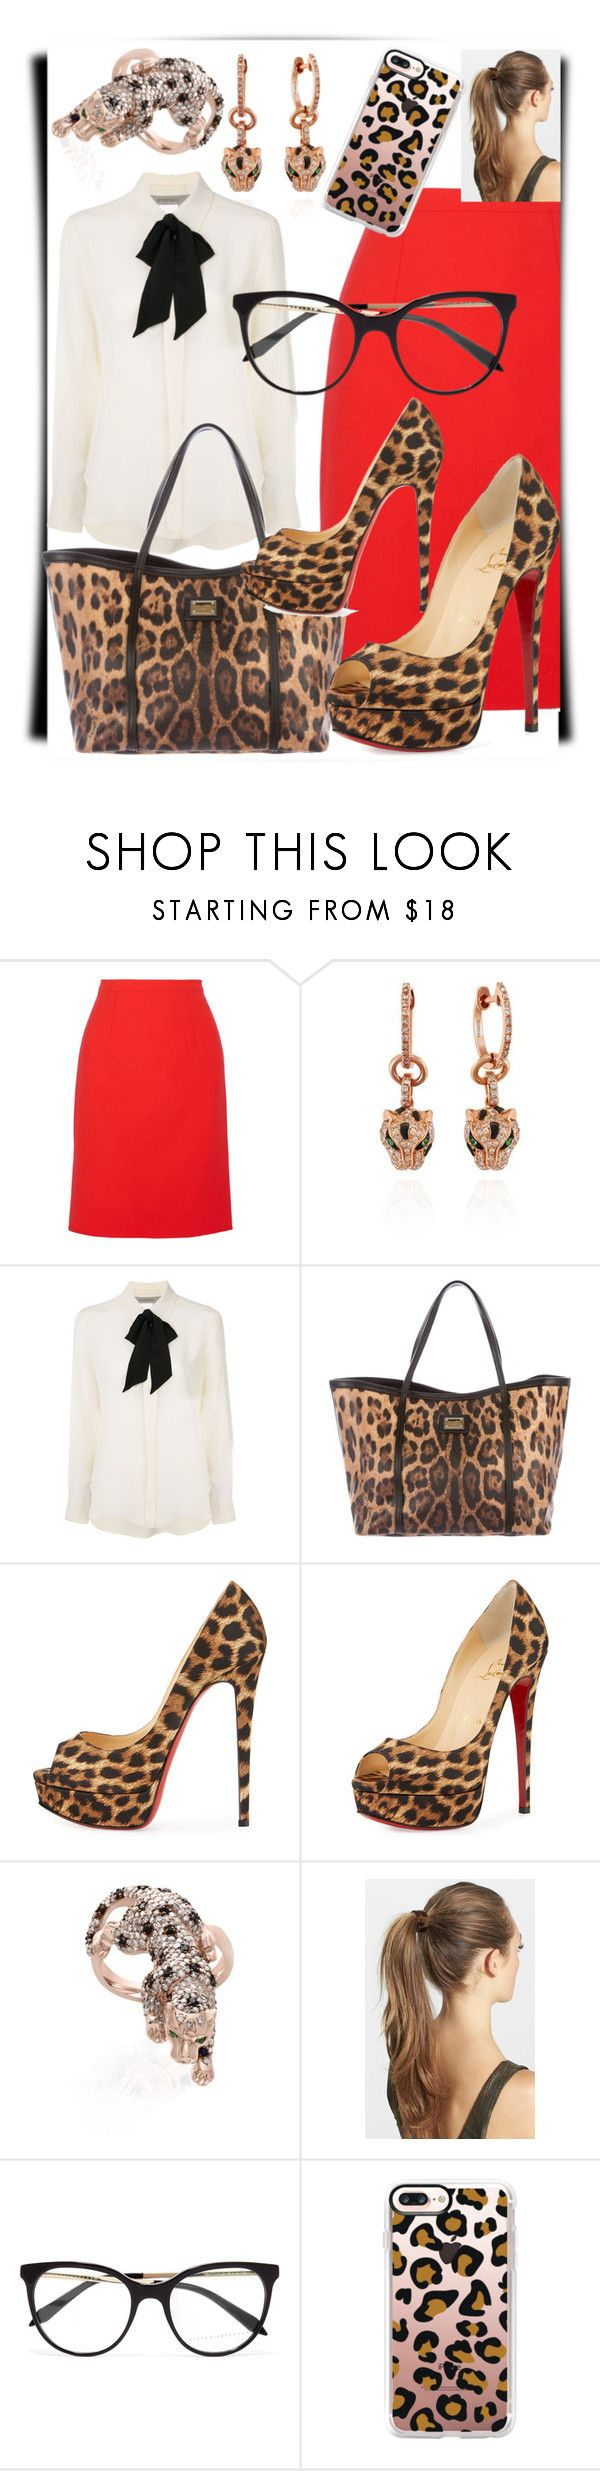 """""""Work Leopard"""" by dark-muffins ❤ liked on Polyvore featuring Oscar de la Renta, Effy Jewelry, Sportmax, Dolce&Gabbana, Christian Louboutin, France Luxe, Victoria Beckham and Casetify"""